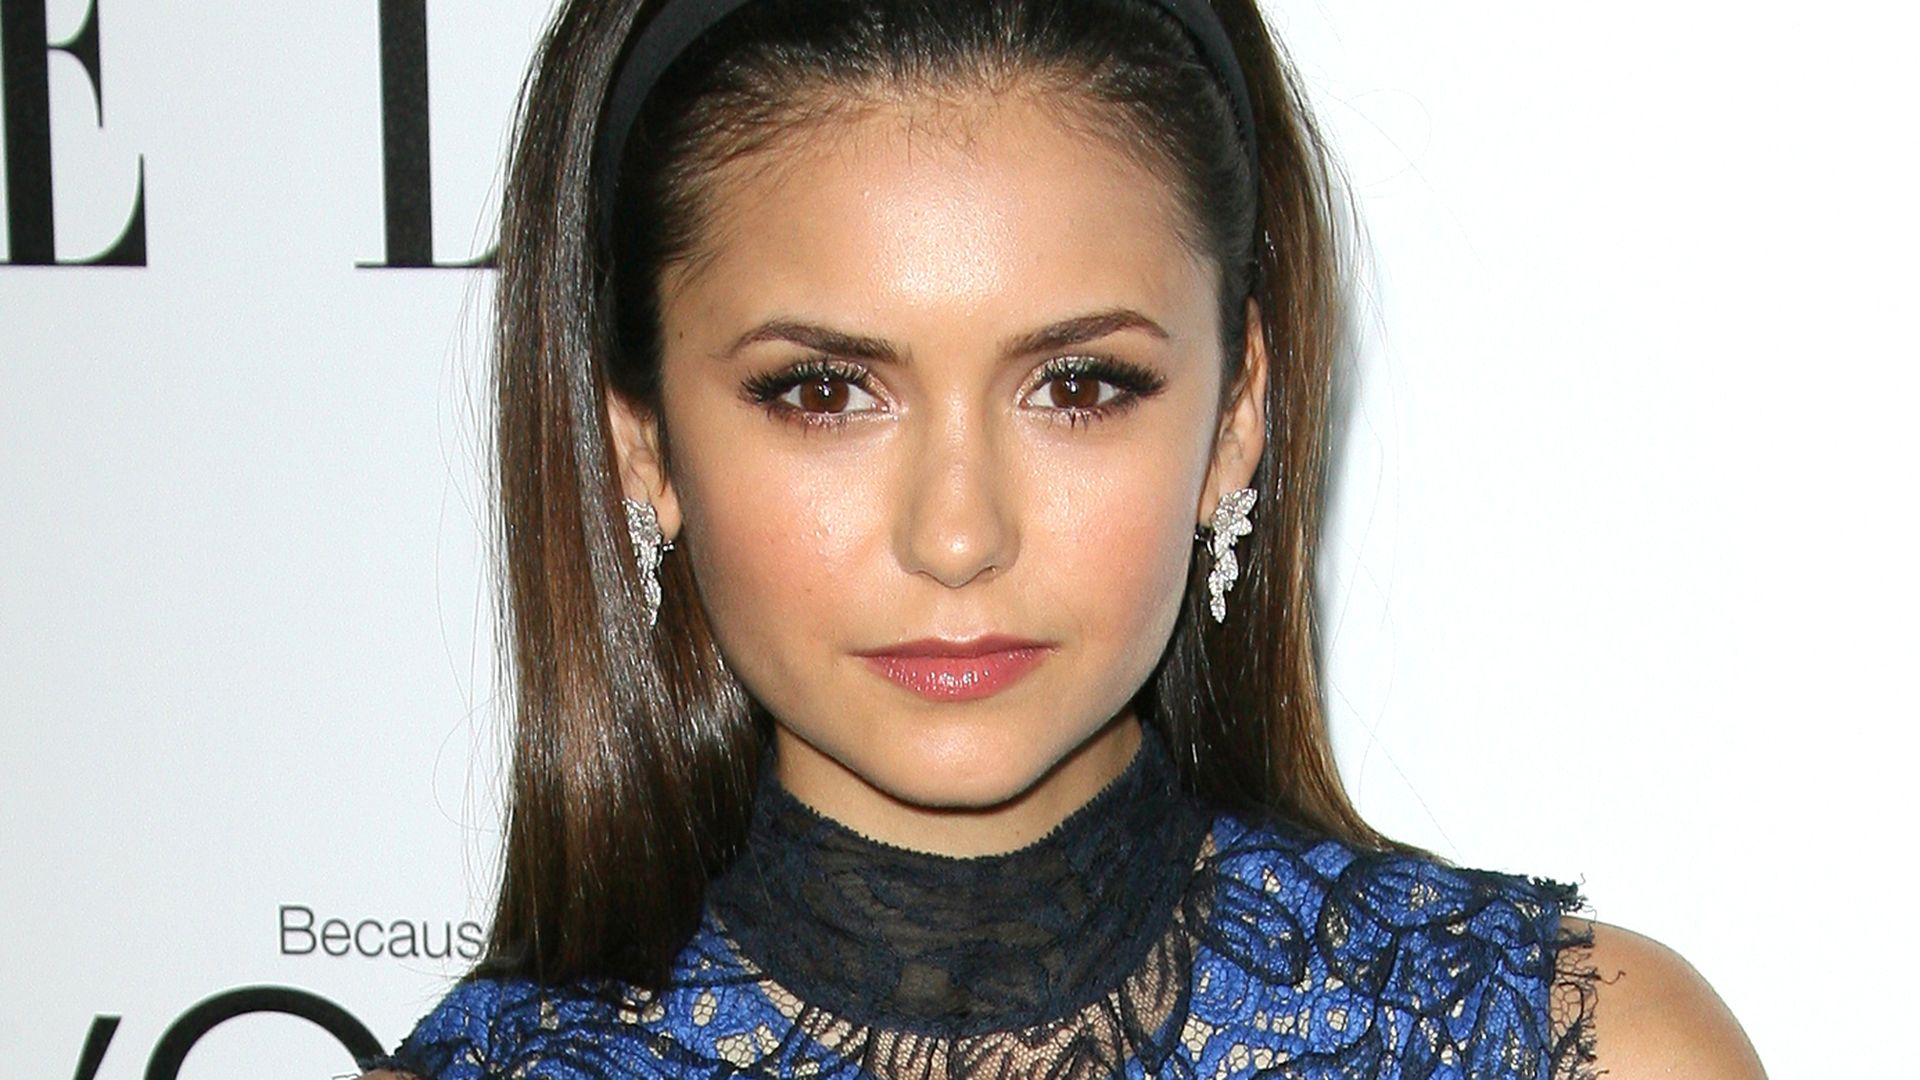 nina dobrev das m ssen m nner bei ihr akzeptieren. Black Bedroom Furniture Sets. Home Design Ideas